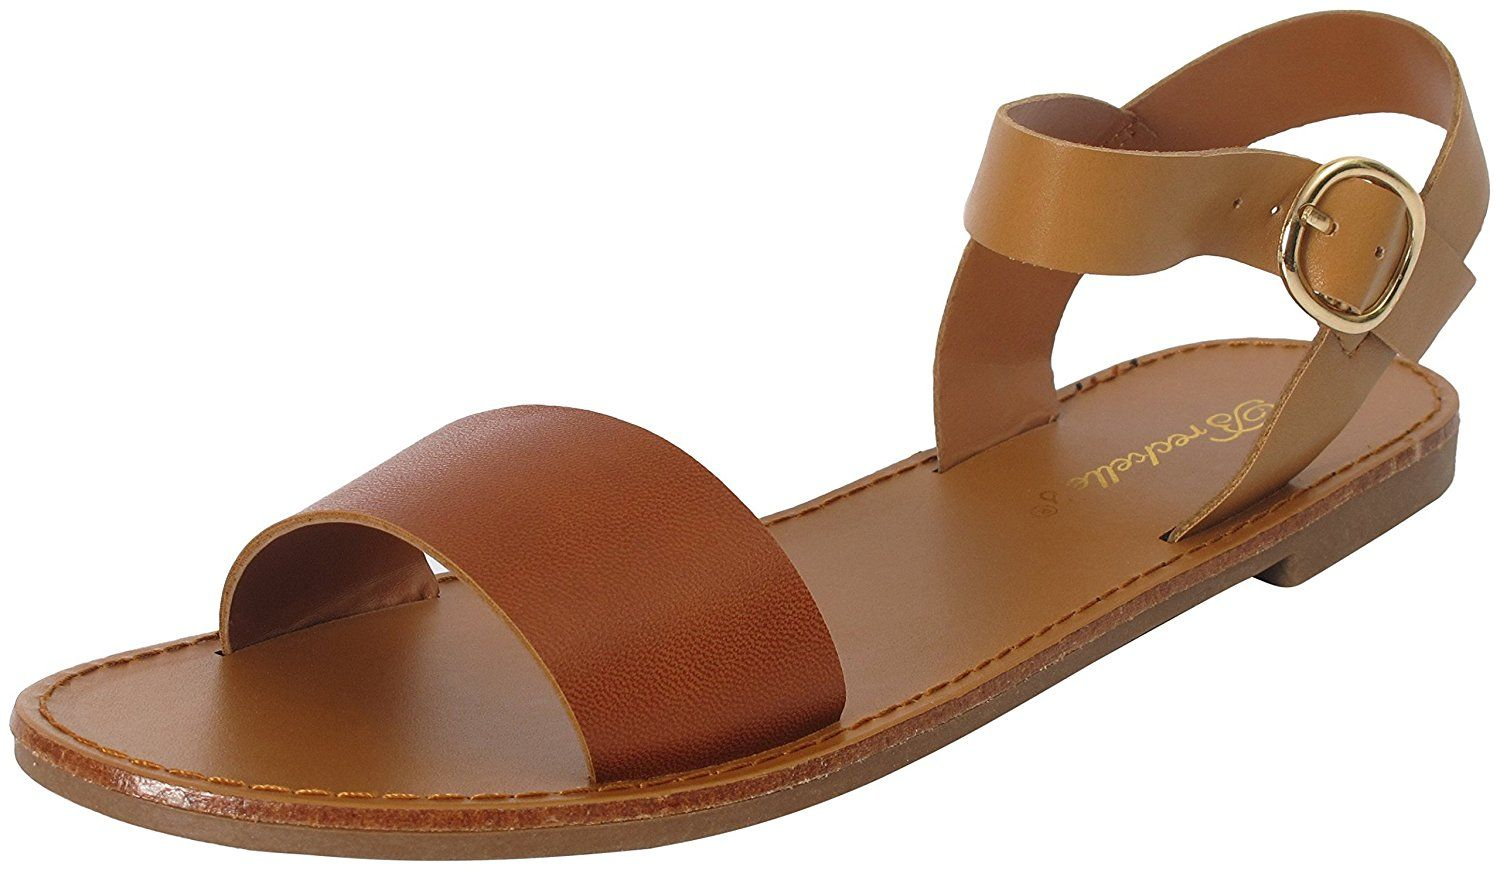 Breckelles Women's Kylee-13 Slingback Open Toe Flat Sandals >> Additional details at the pin image, click it  : Sandals